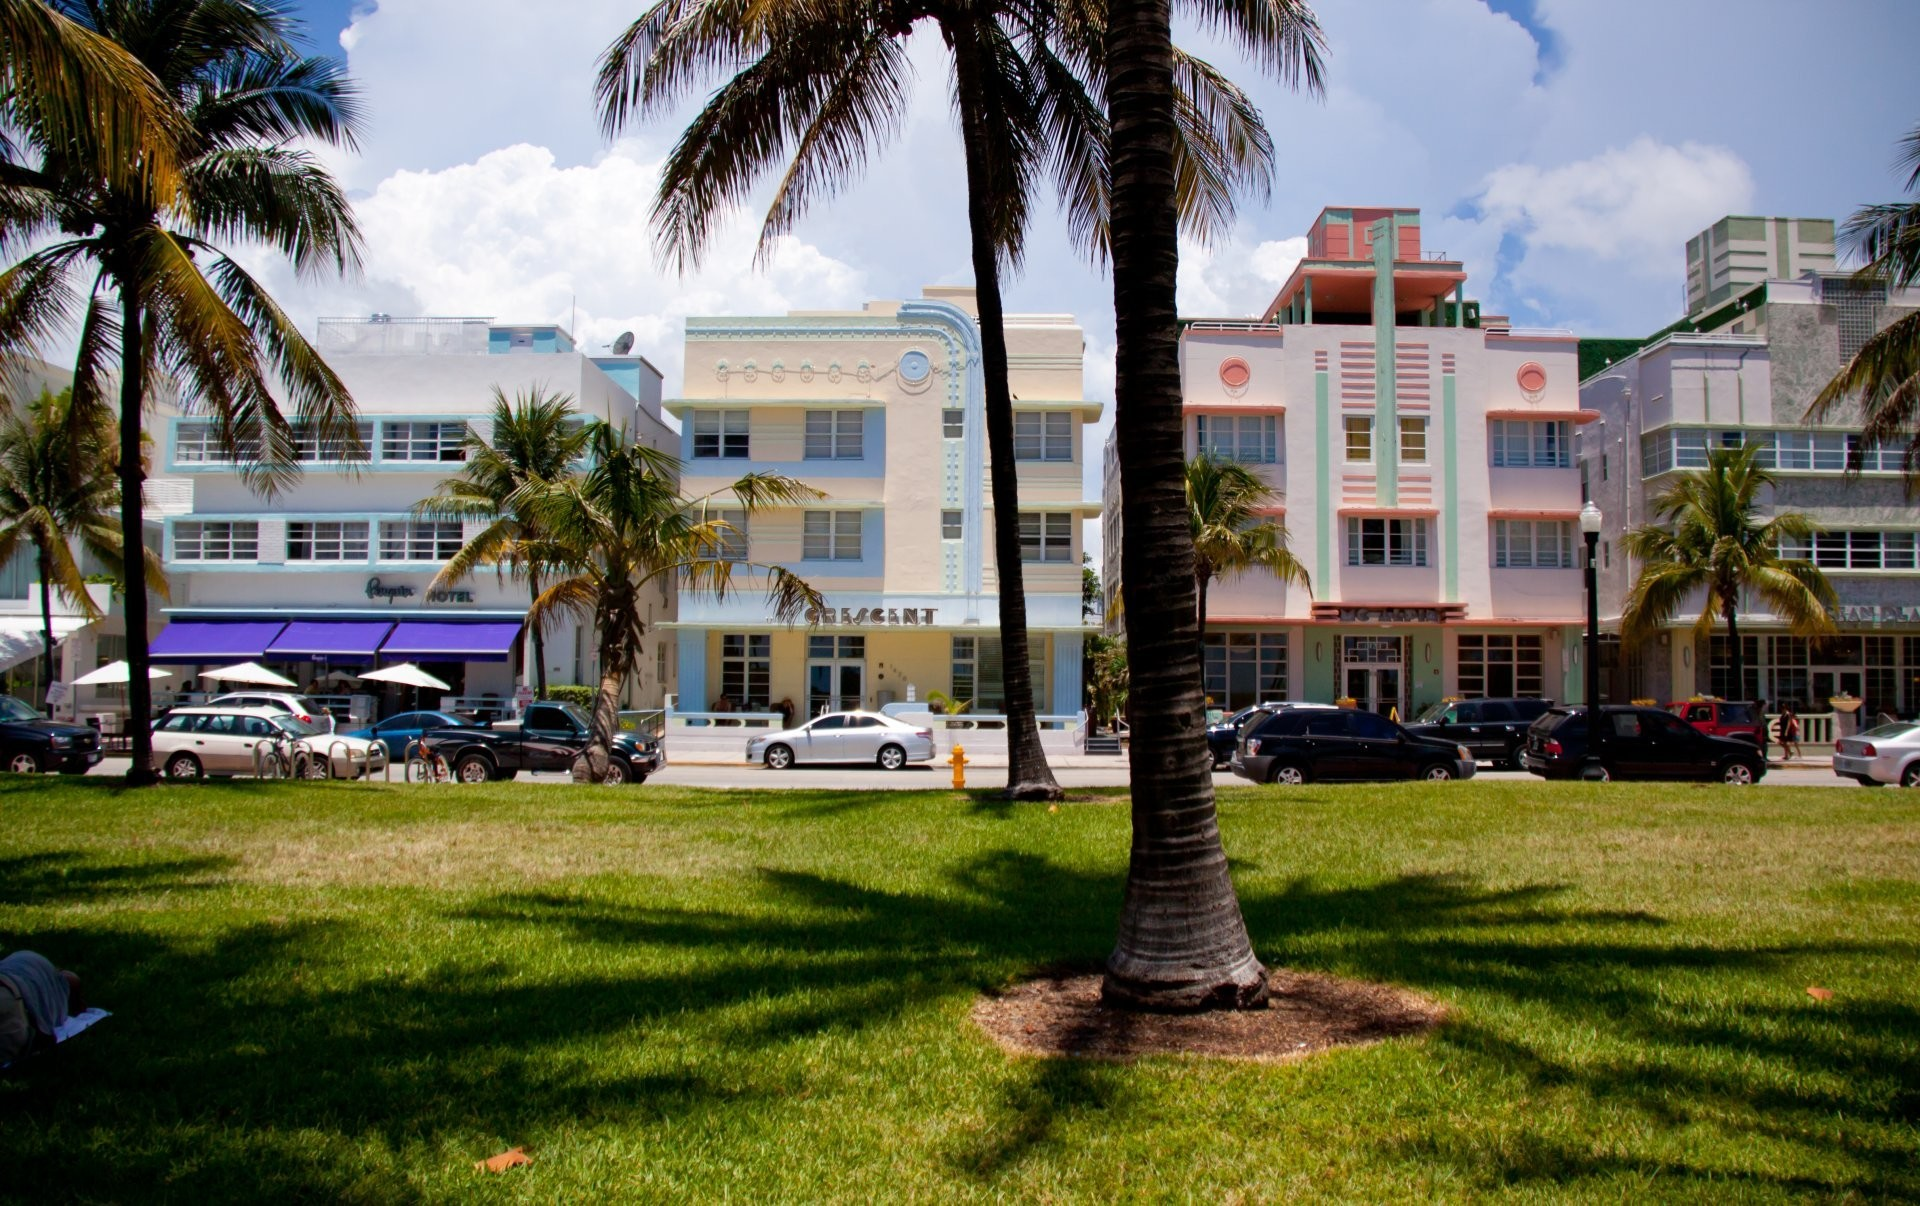 1920x1206 miami florida florida miami south beach palm cars house hotels vice city